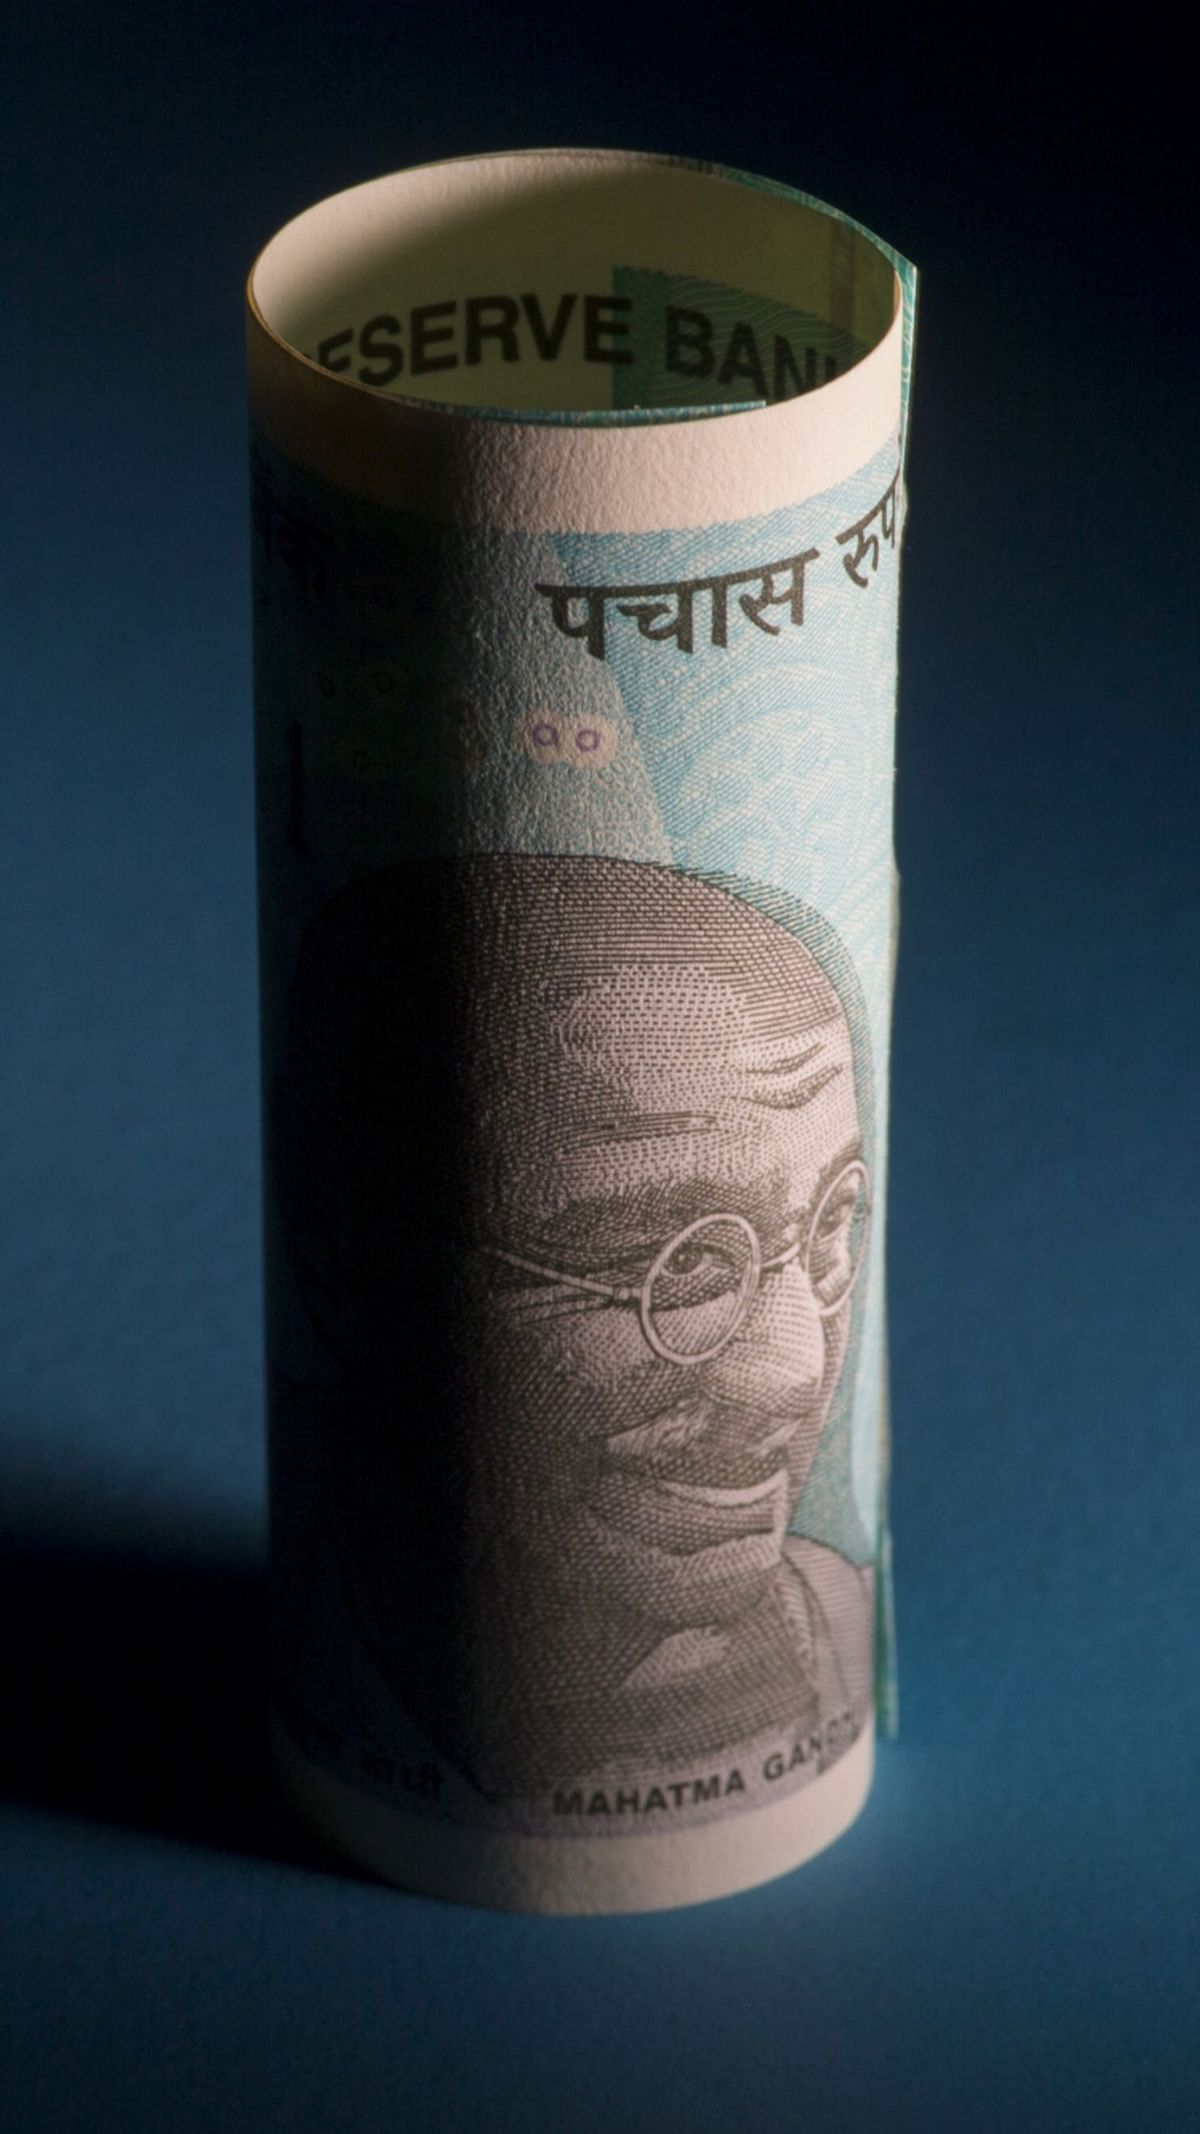 Spectrum Dues And Insolvency - The NCLAT View